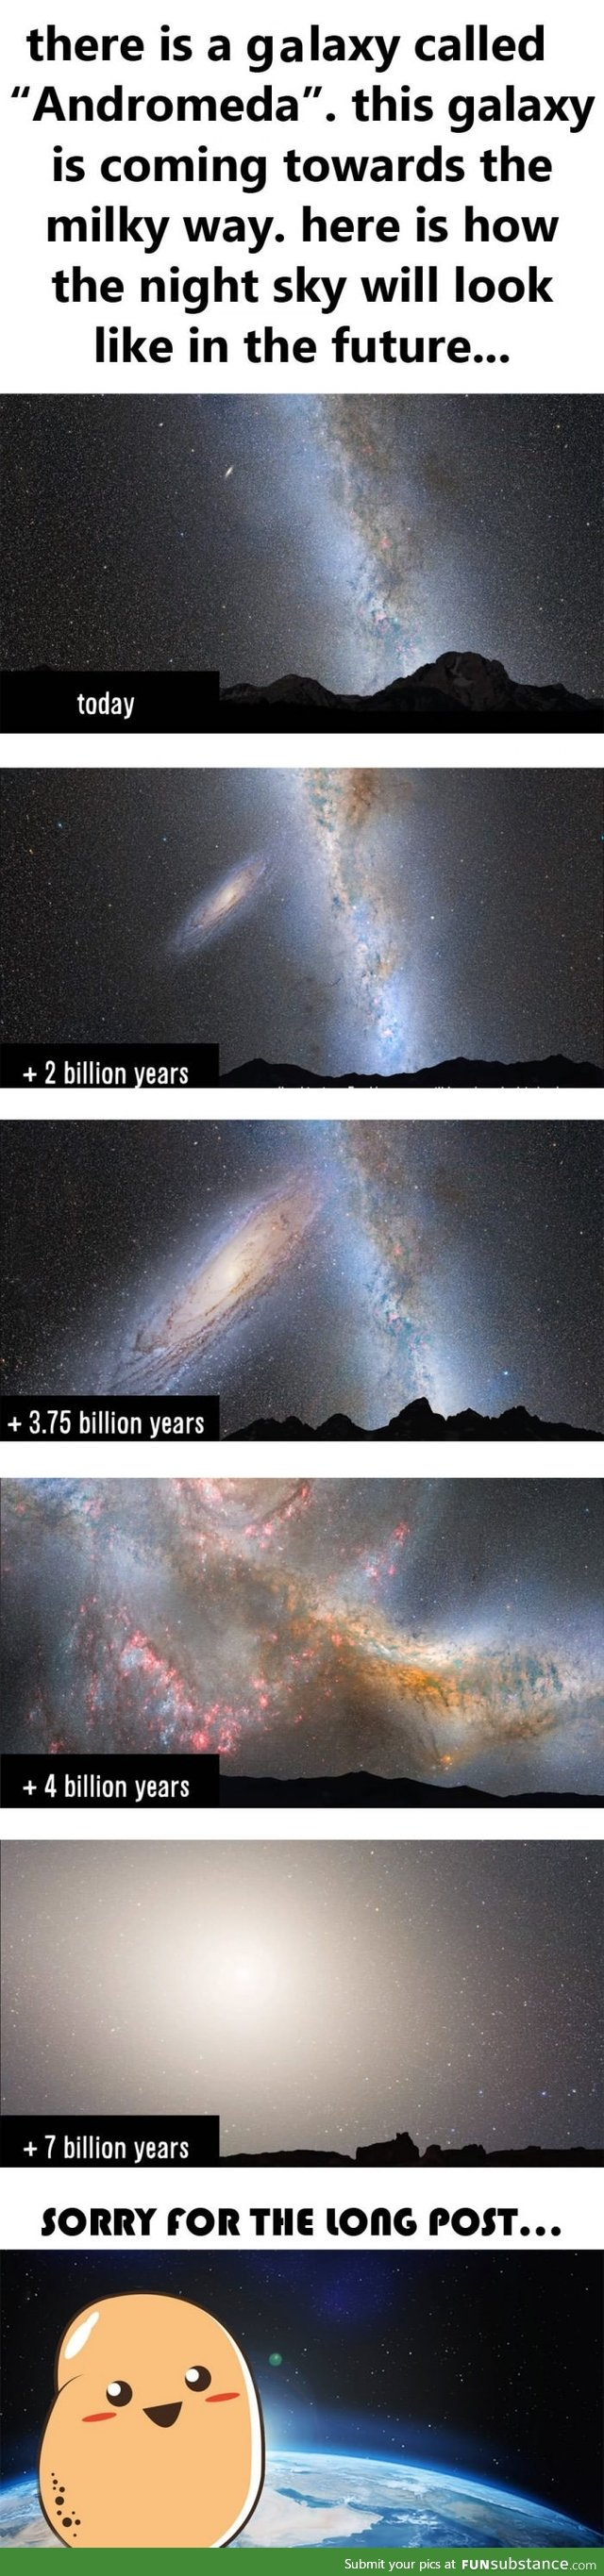 How the night sky from Earth will look like in the far future